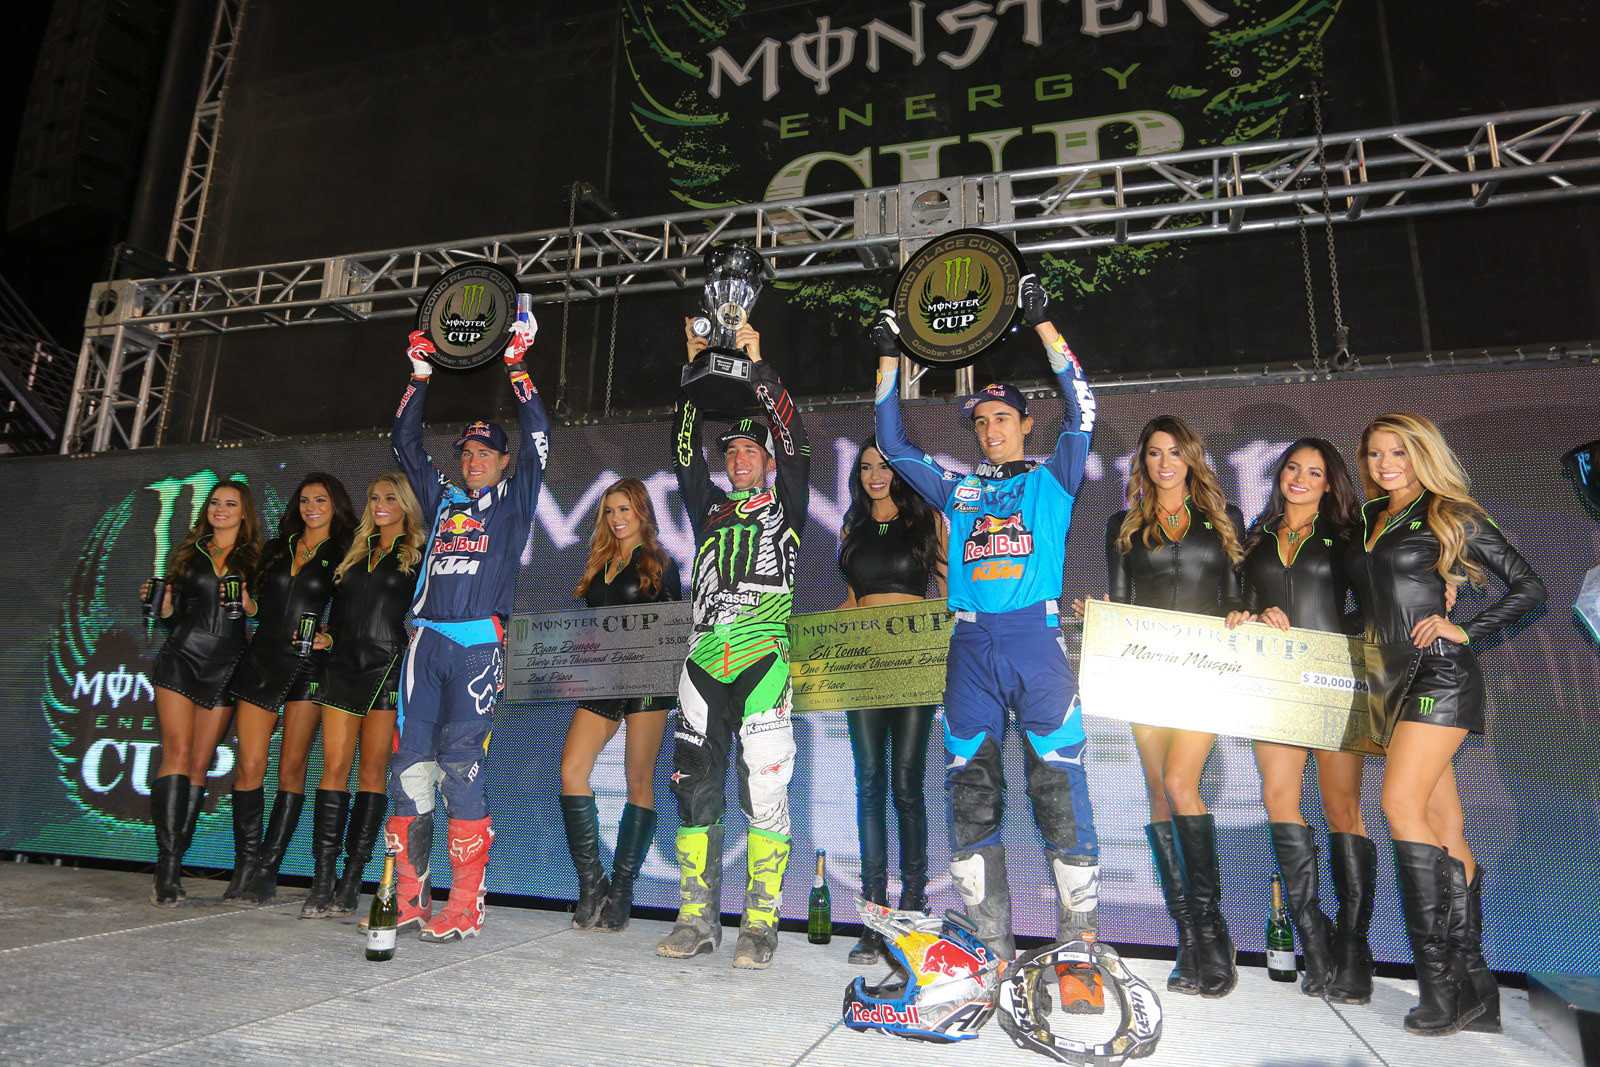 Eli Tomac (1st), Ryan Dungey (2nd), and Marvin Musquin (3rd) - Photo Blast: Monster Energy Cup - Motocross Pictures - Vital MX